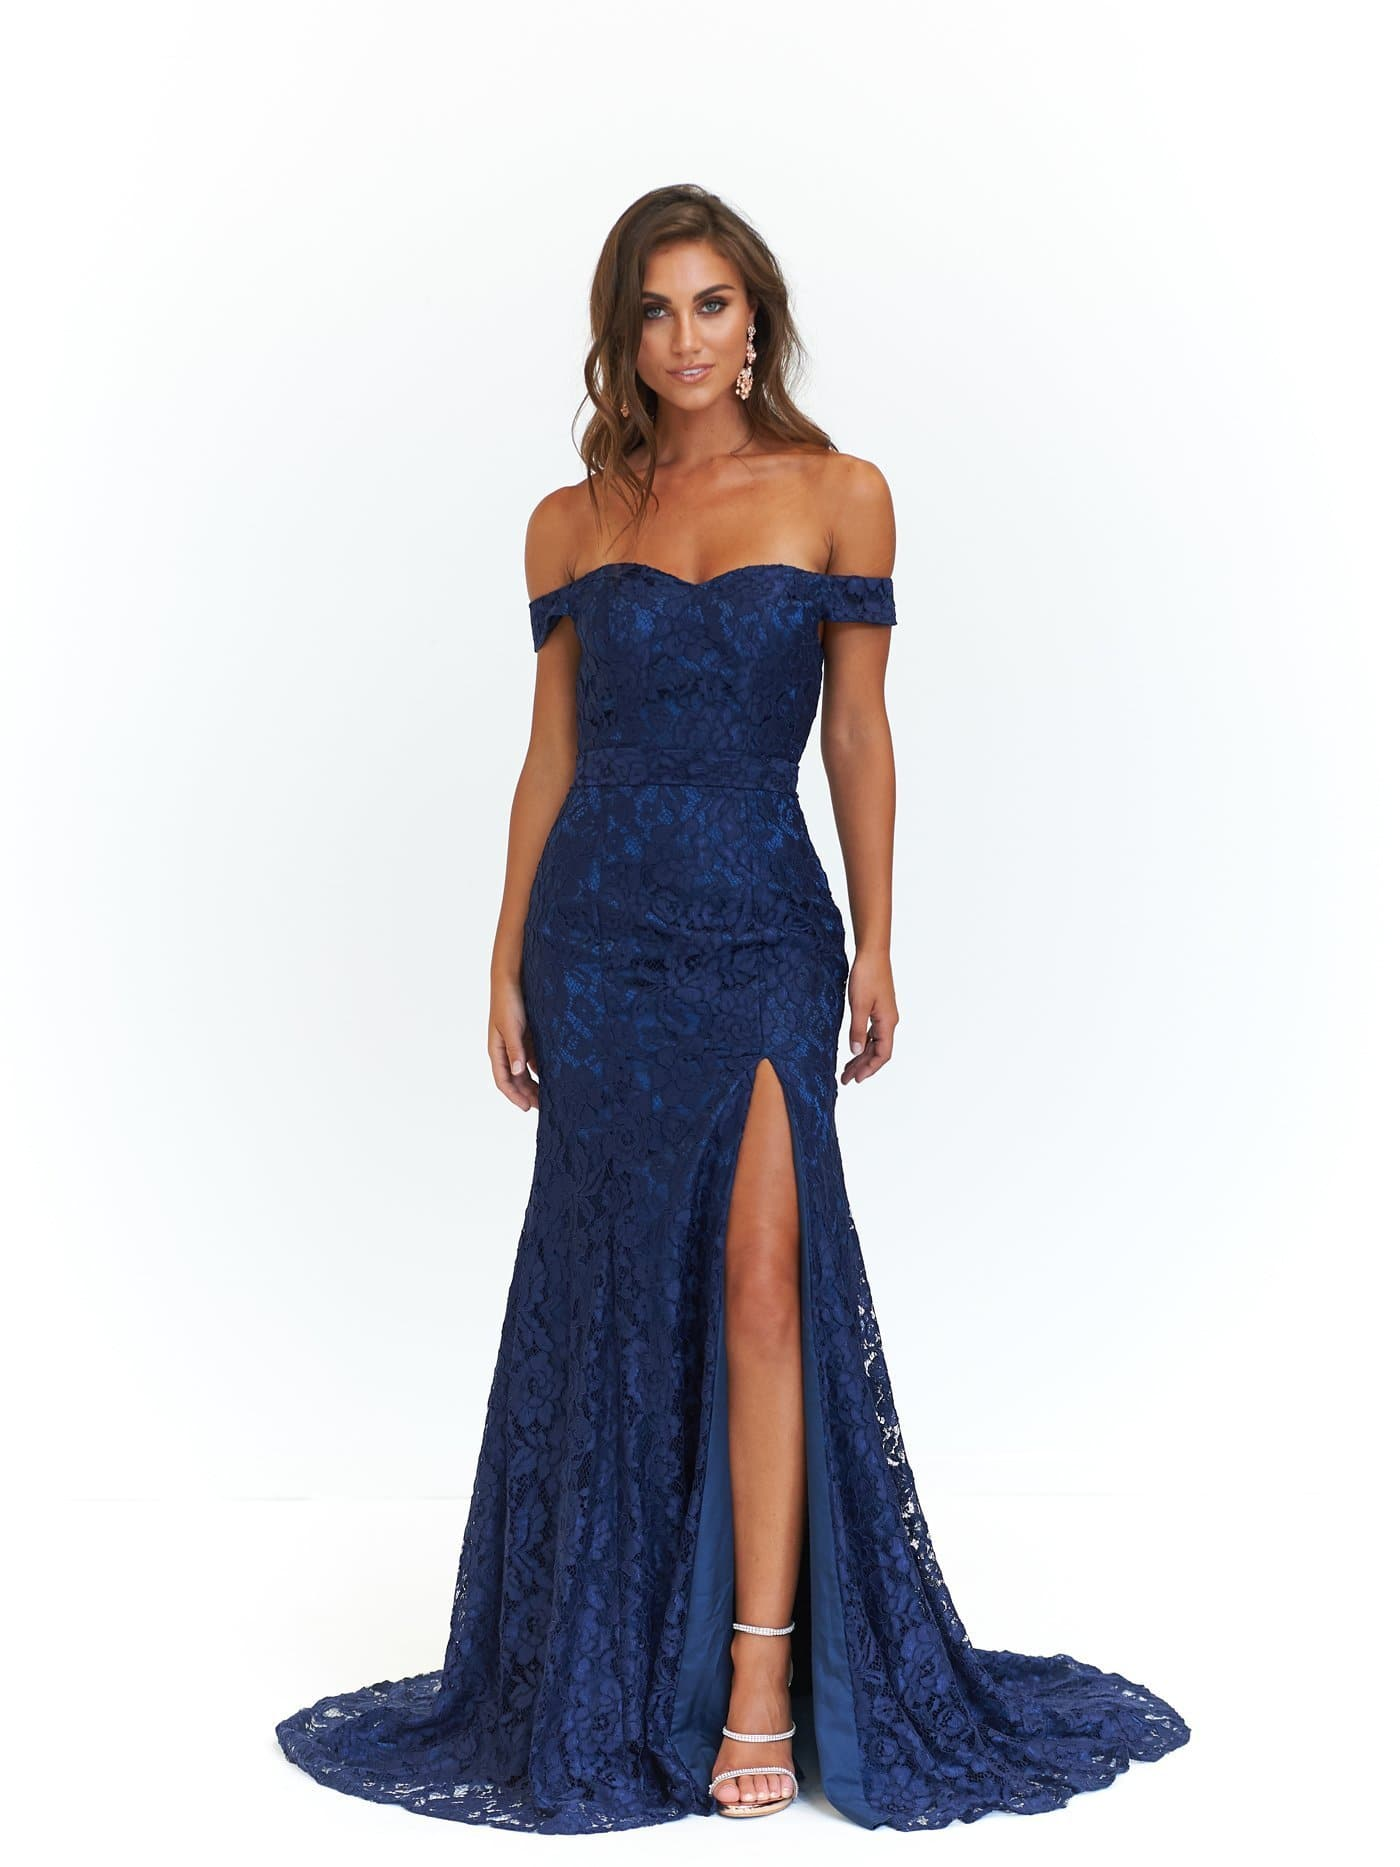 A&N Leyla - Navy Off-Shoulder Lace Gown with Side Slit